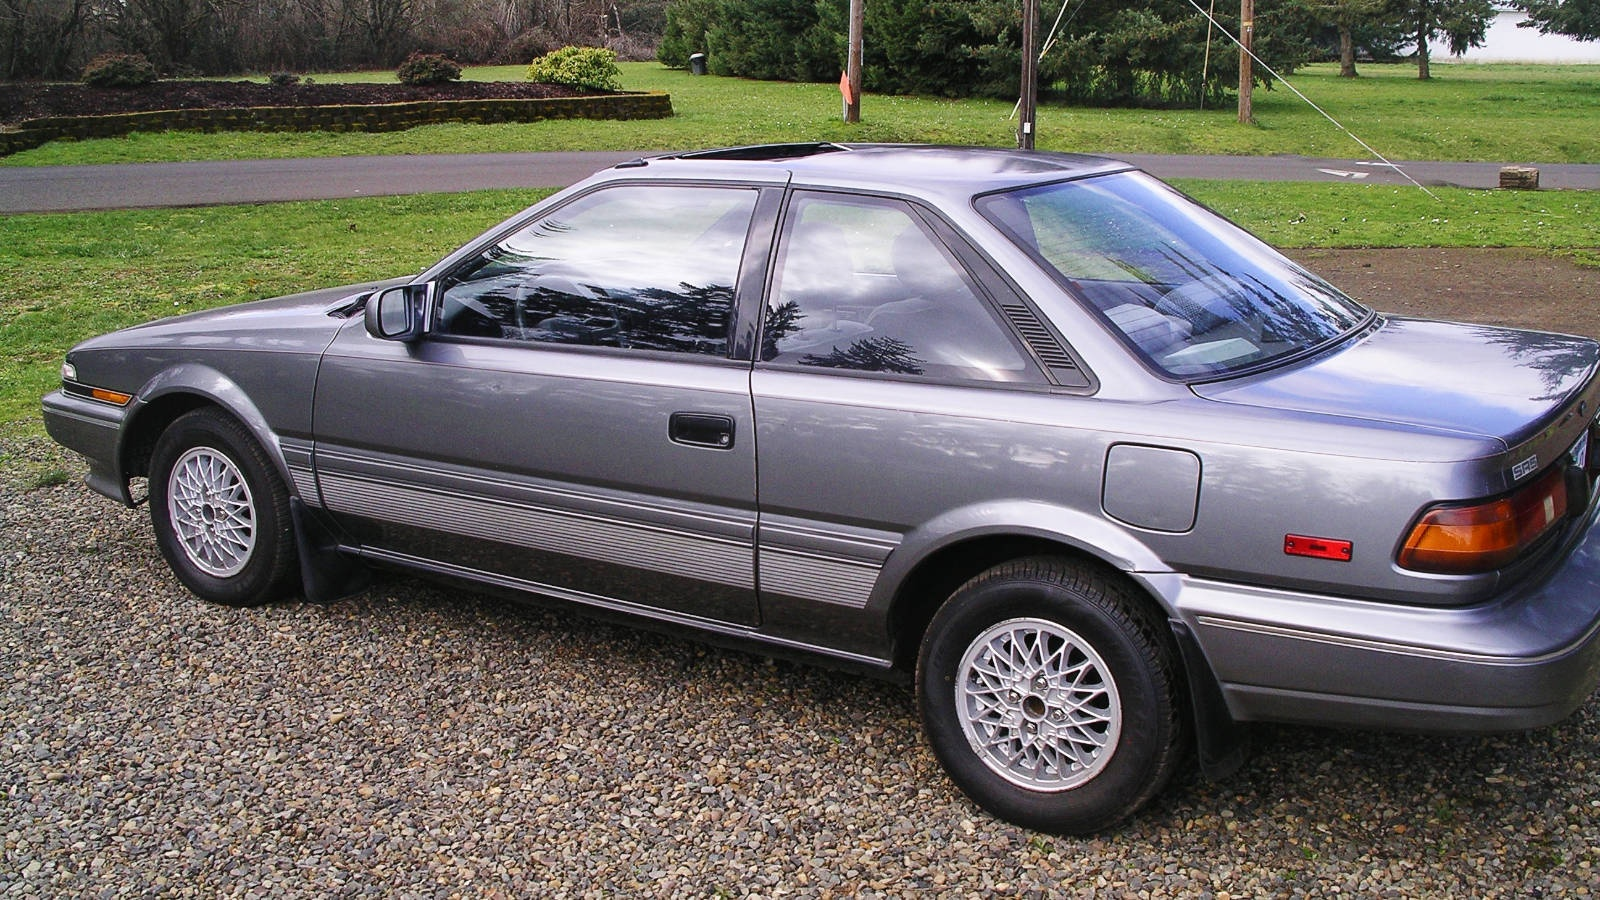 exclusive 1990 toyota corolla sr5 coupe for 1 500. Black Bedroom Furniture Sets. Home Design Ideas